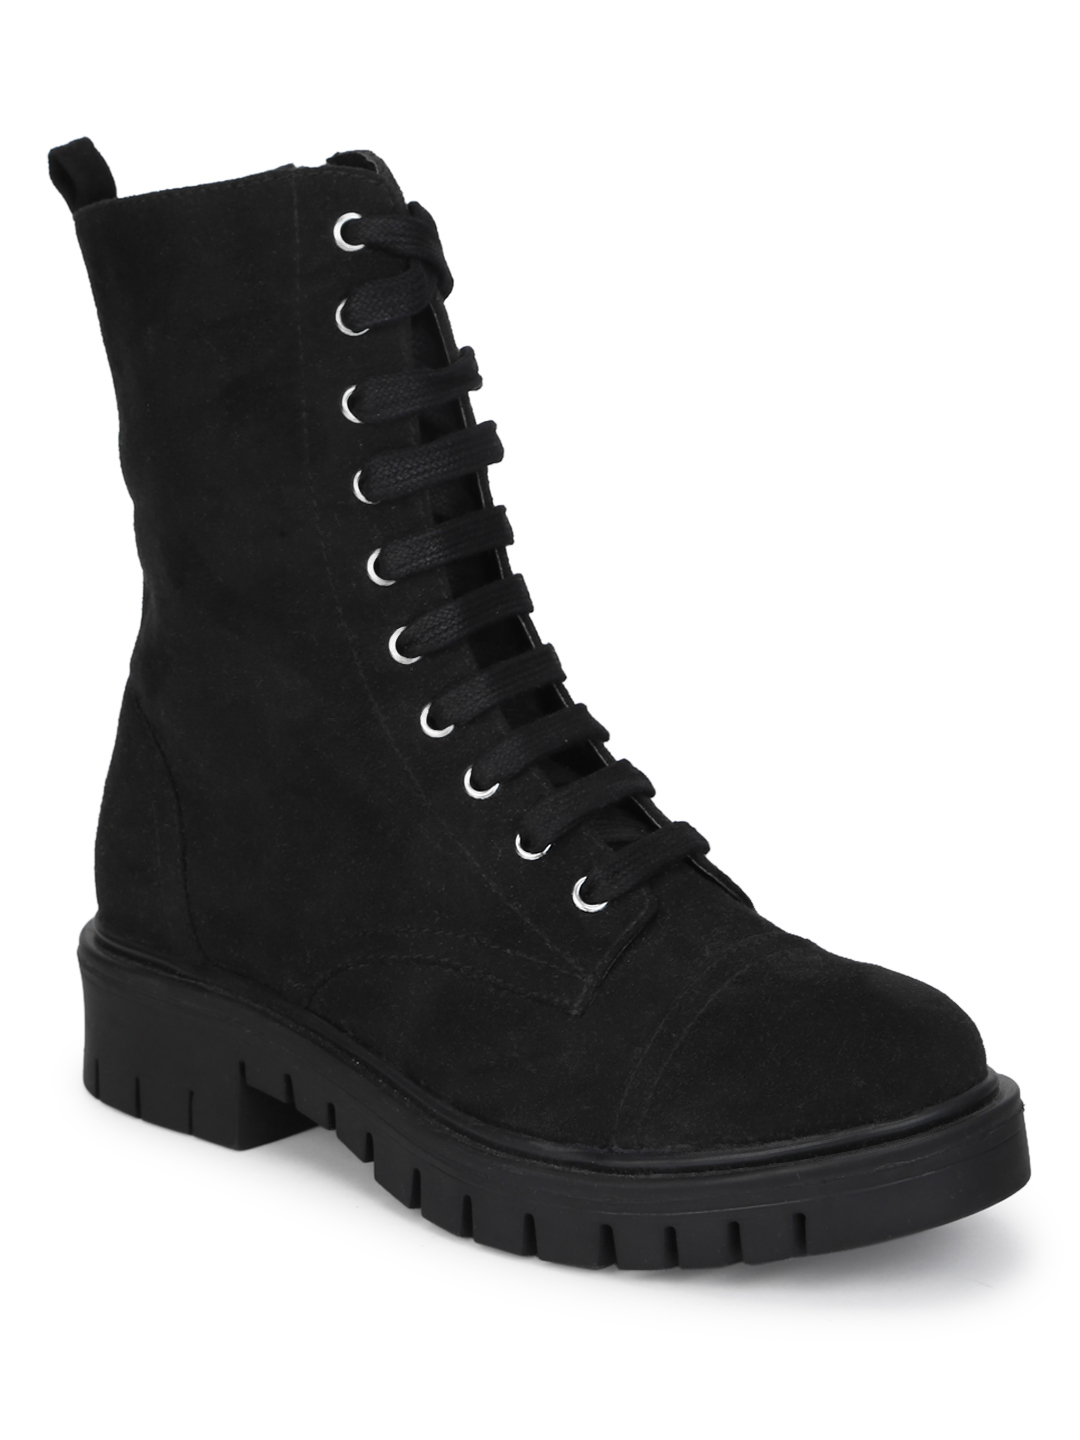 Truffle Collection | Truffle Collection Black Suede Lace Up Ankle Boots